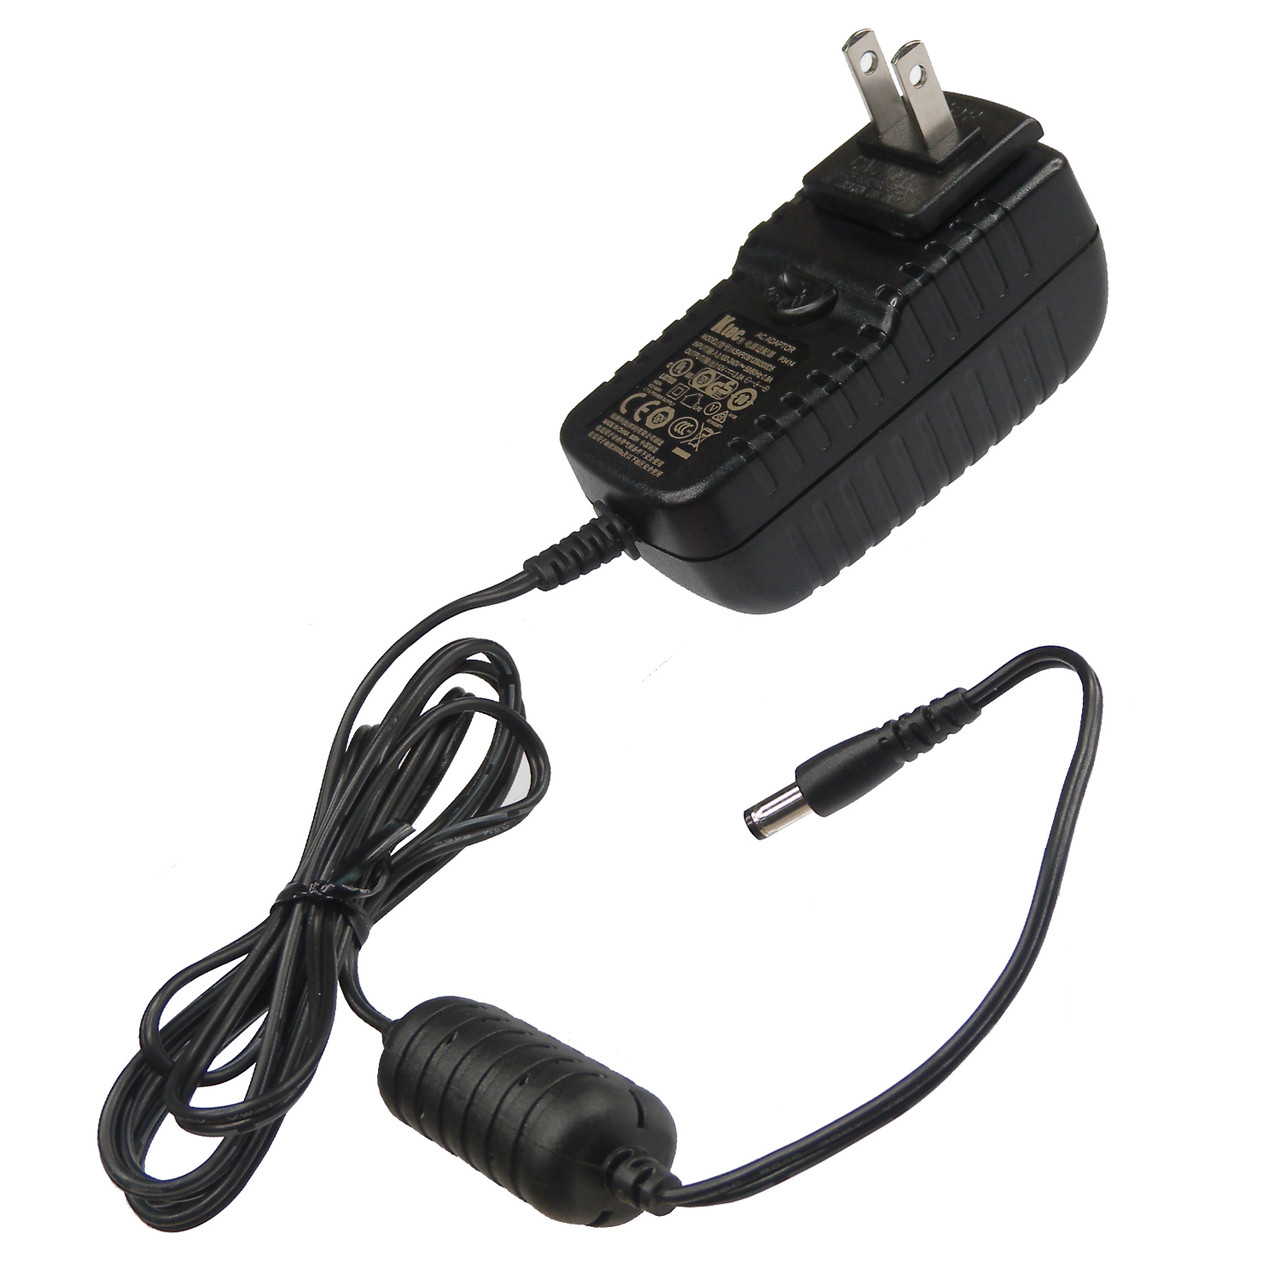 Universal Power Supply with 5 polarized plugs and Micro USB Cable 22d256be69